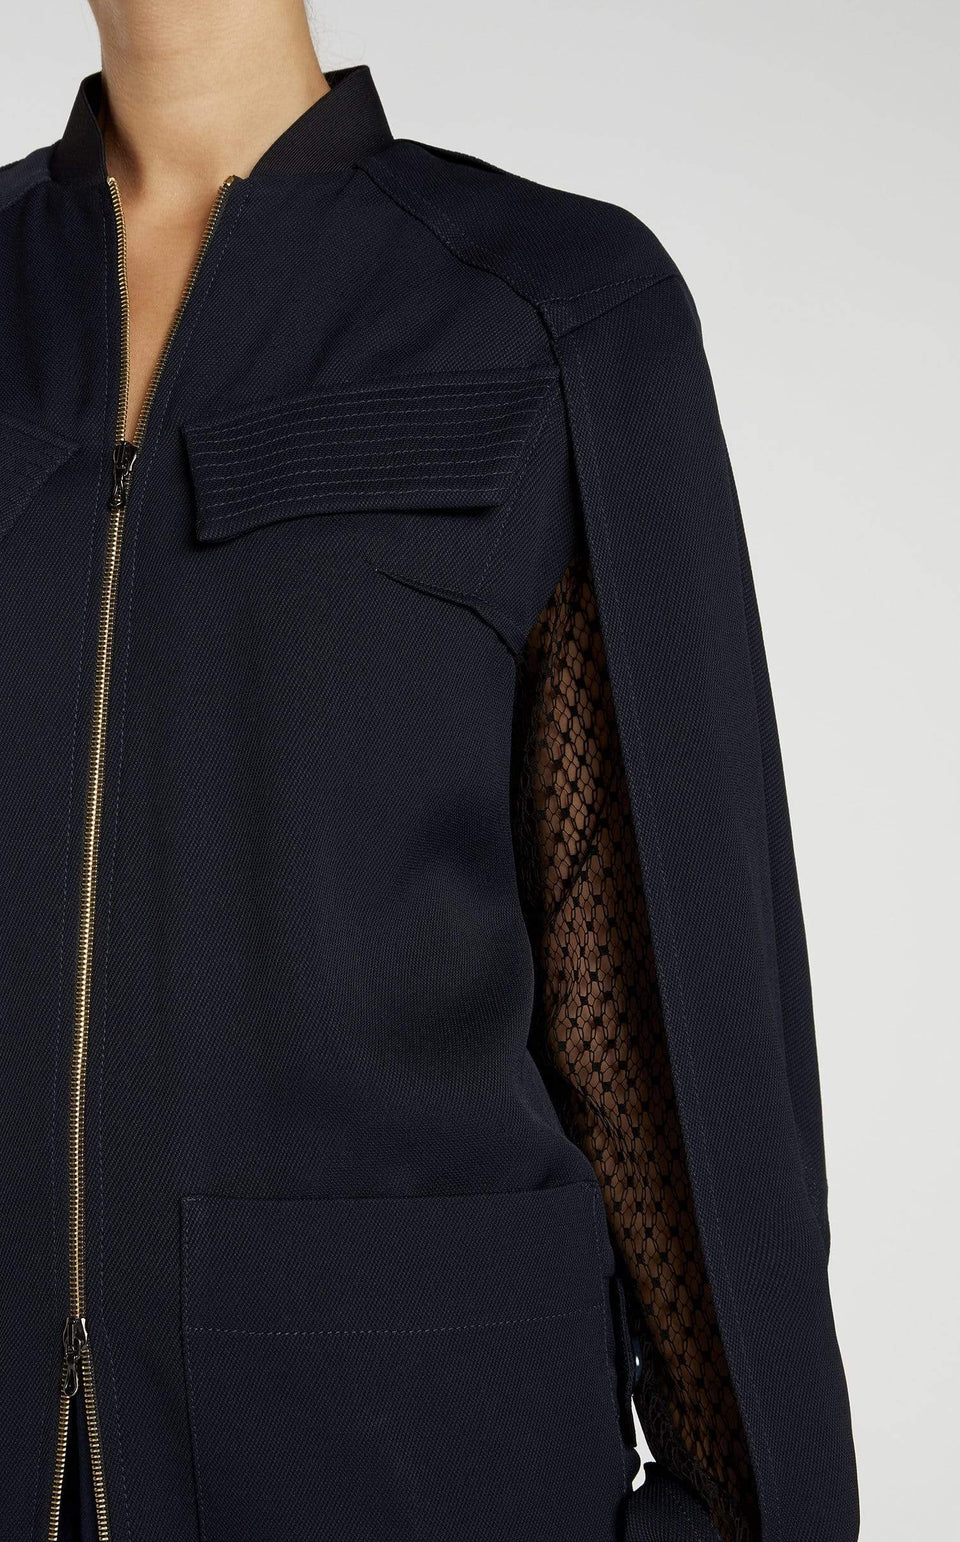 Marco Coat In Navy/Black from Roland Mouret